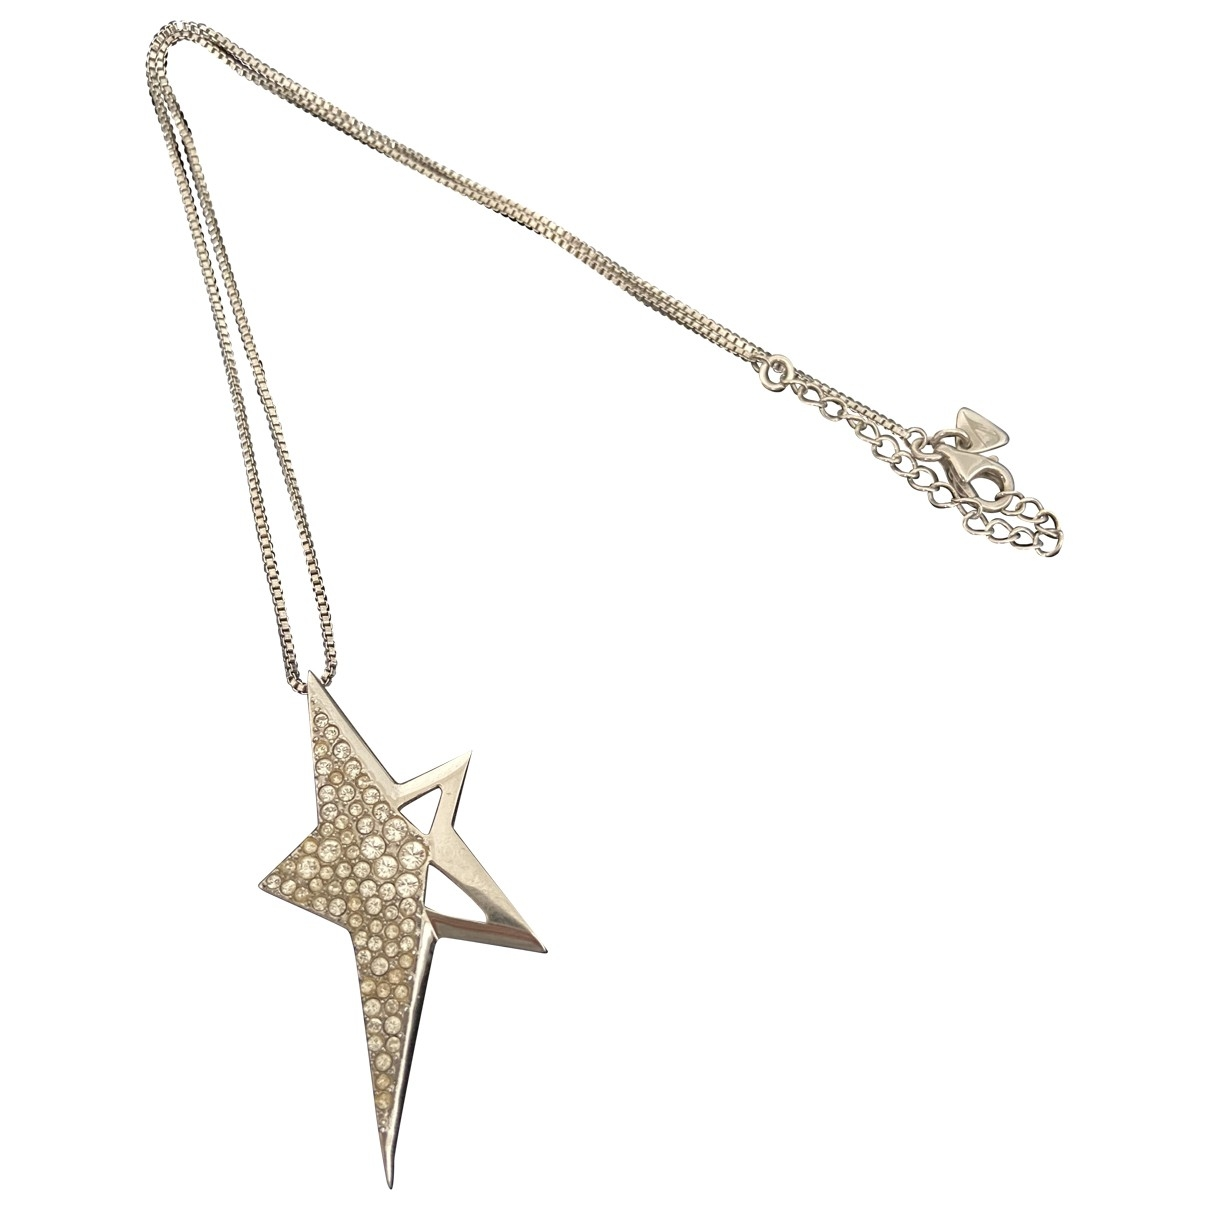 Thierry Mugler \N Silver Metal necklace for Women \N